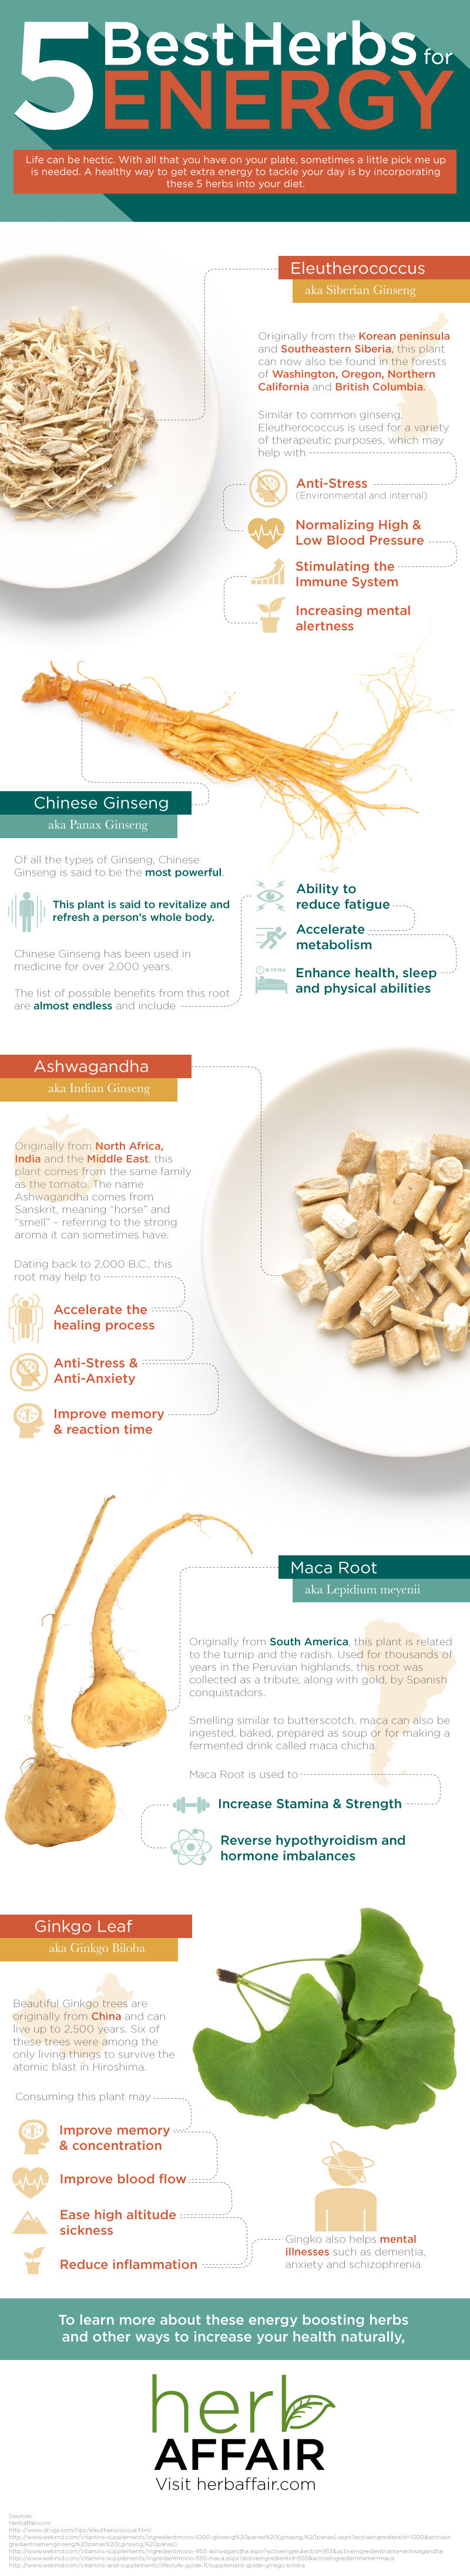 Infographic: 5 Best Herbs For Energy